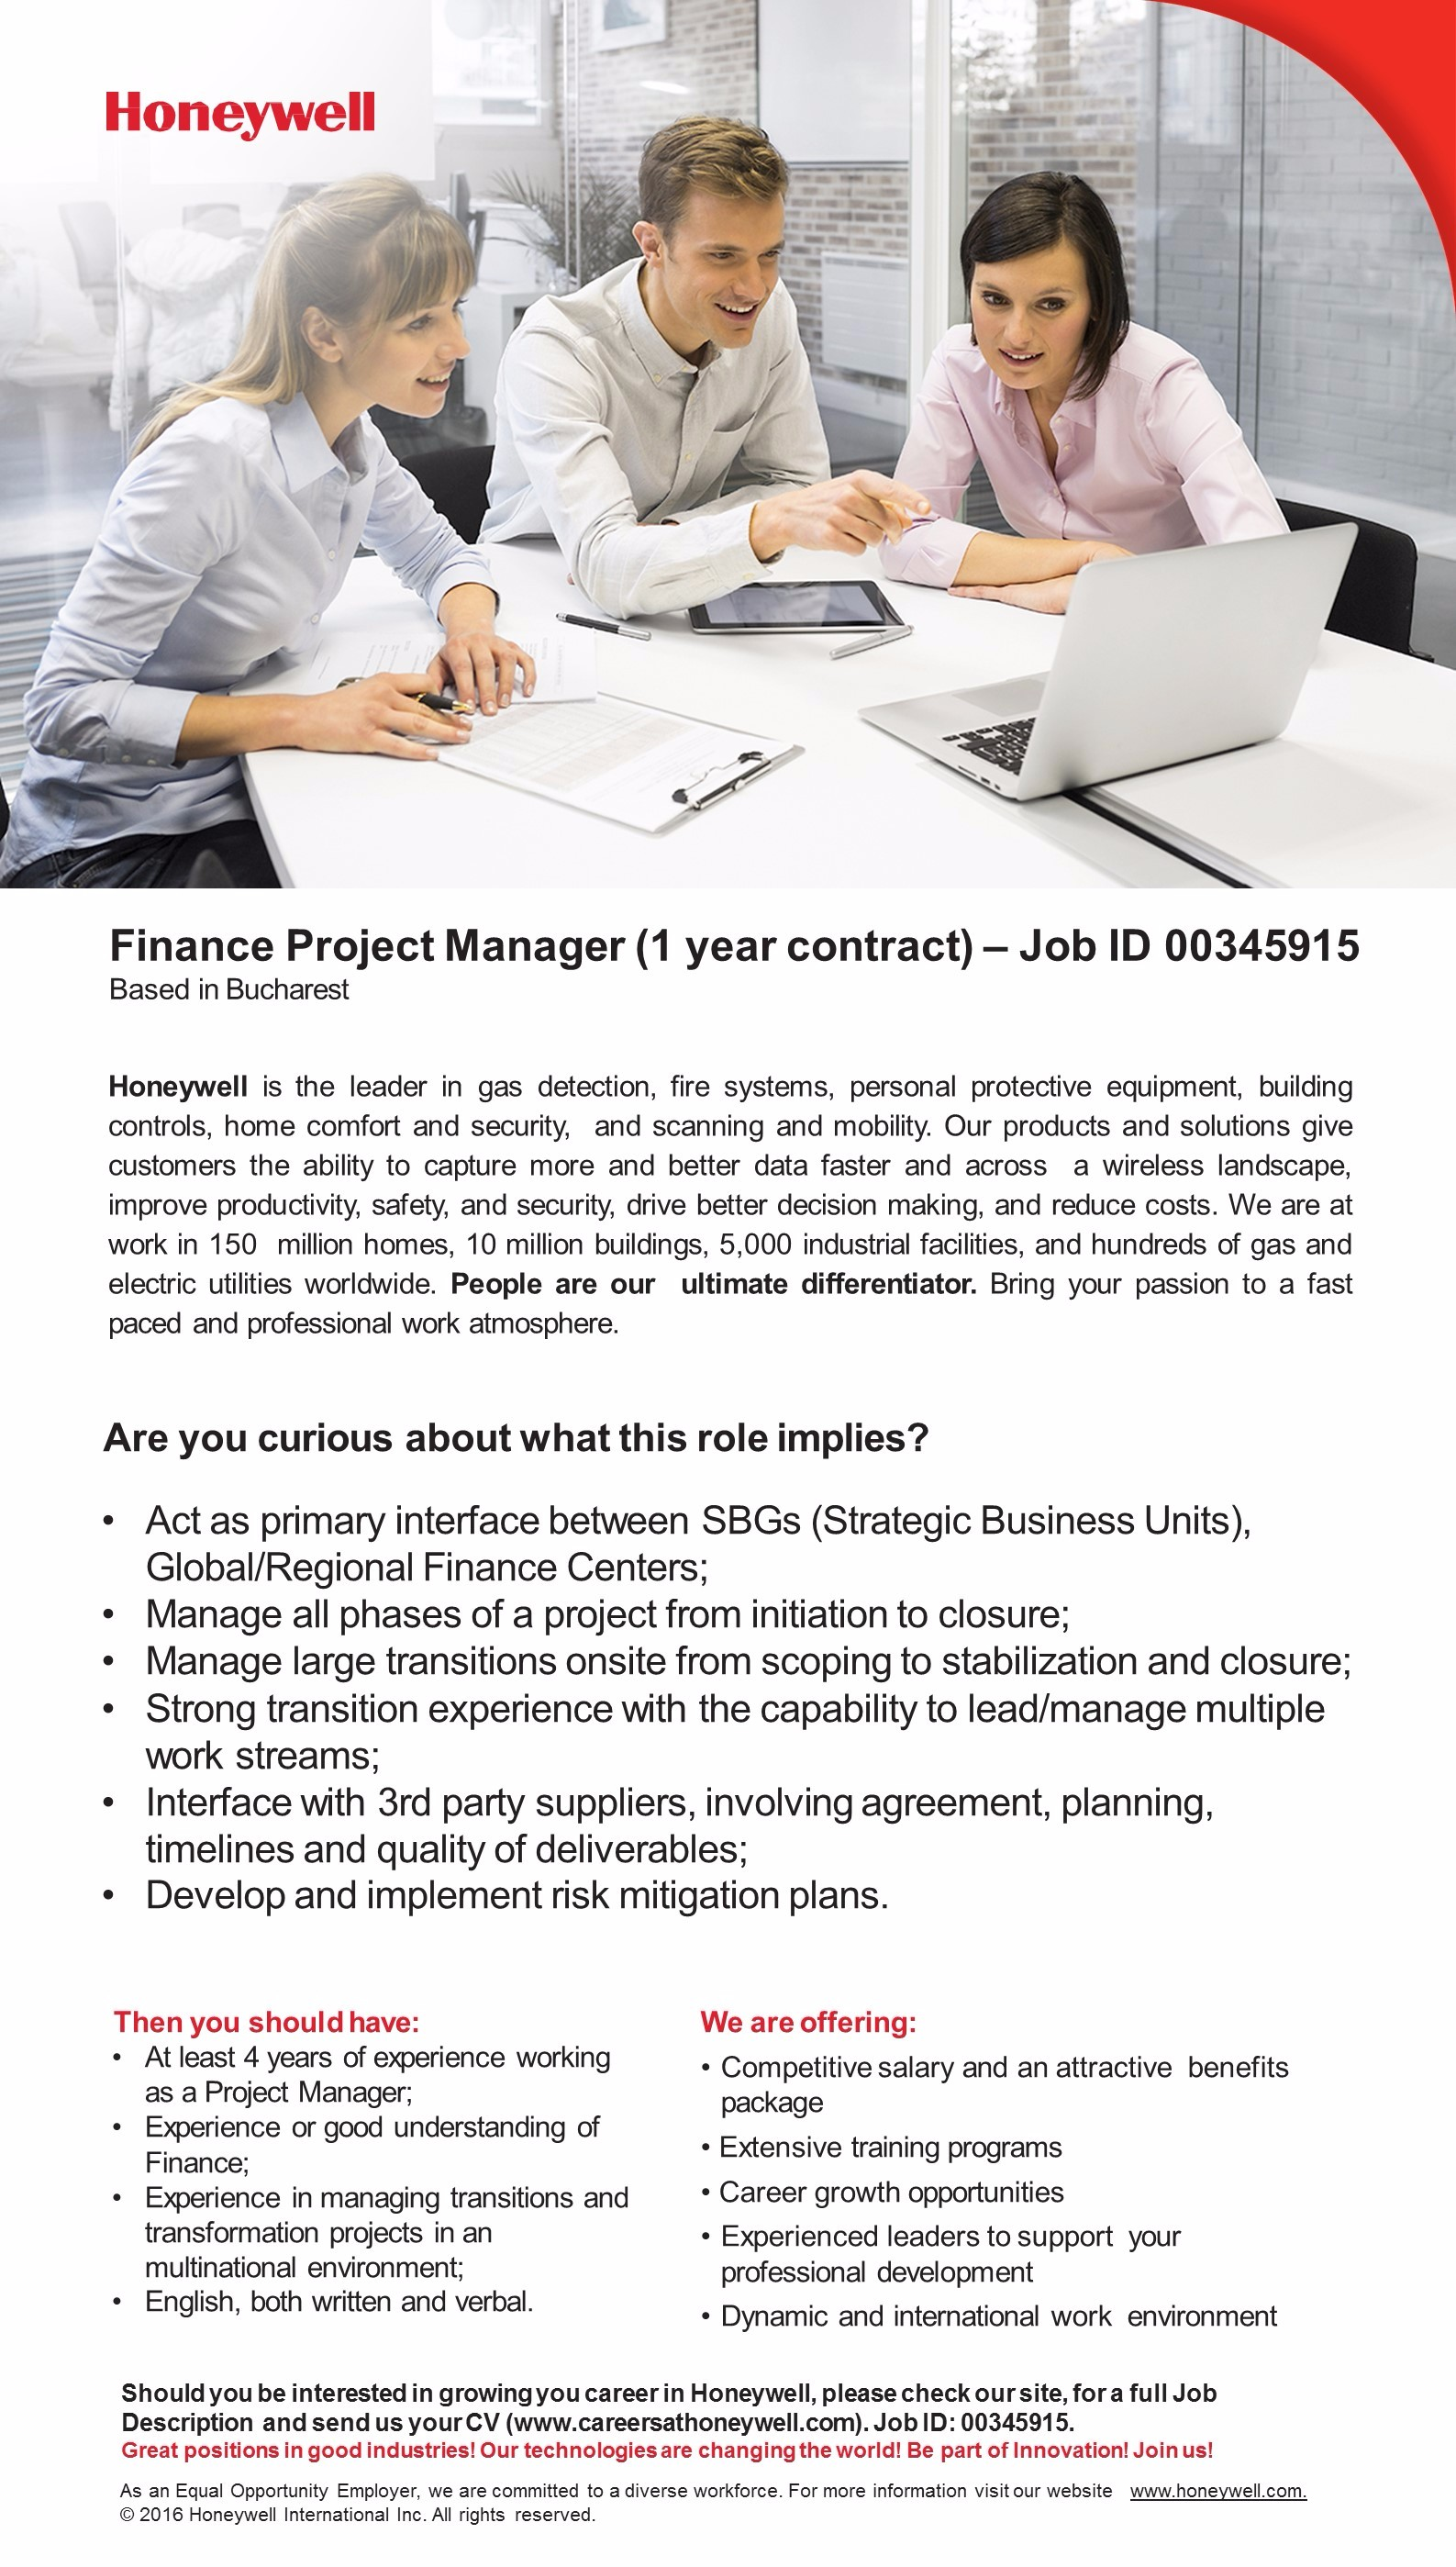 Finance Project Manager - 1 year contract